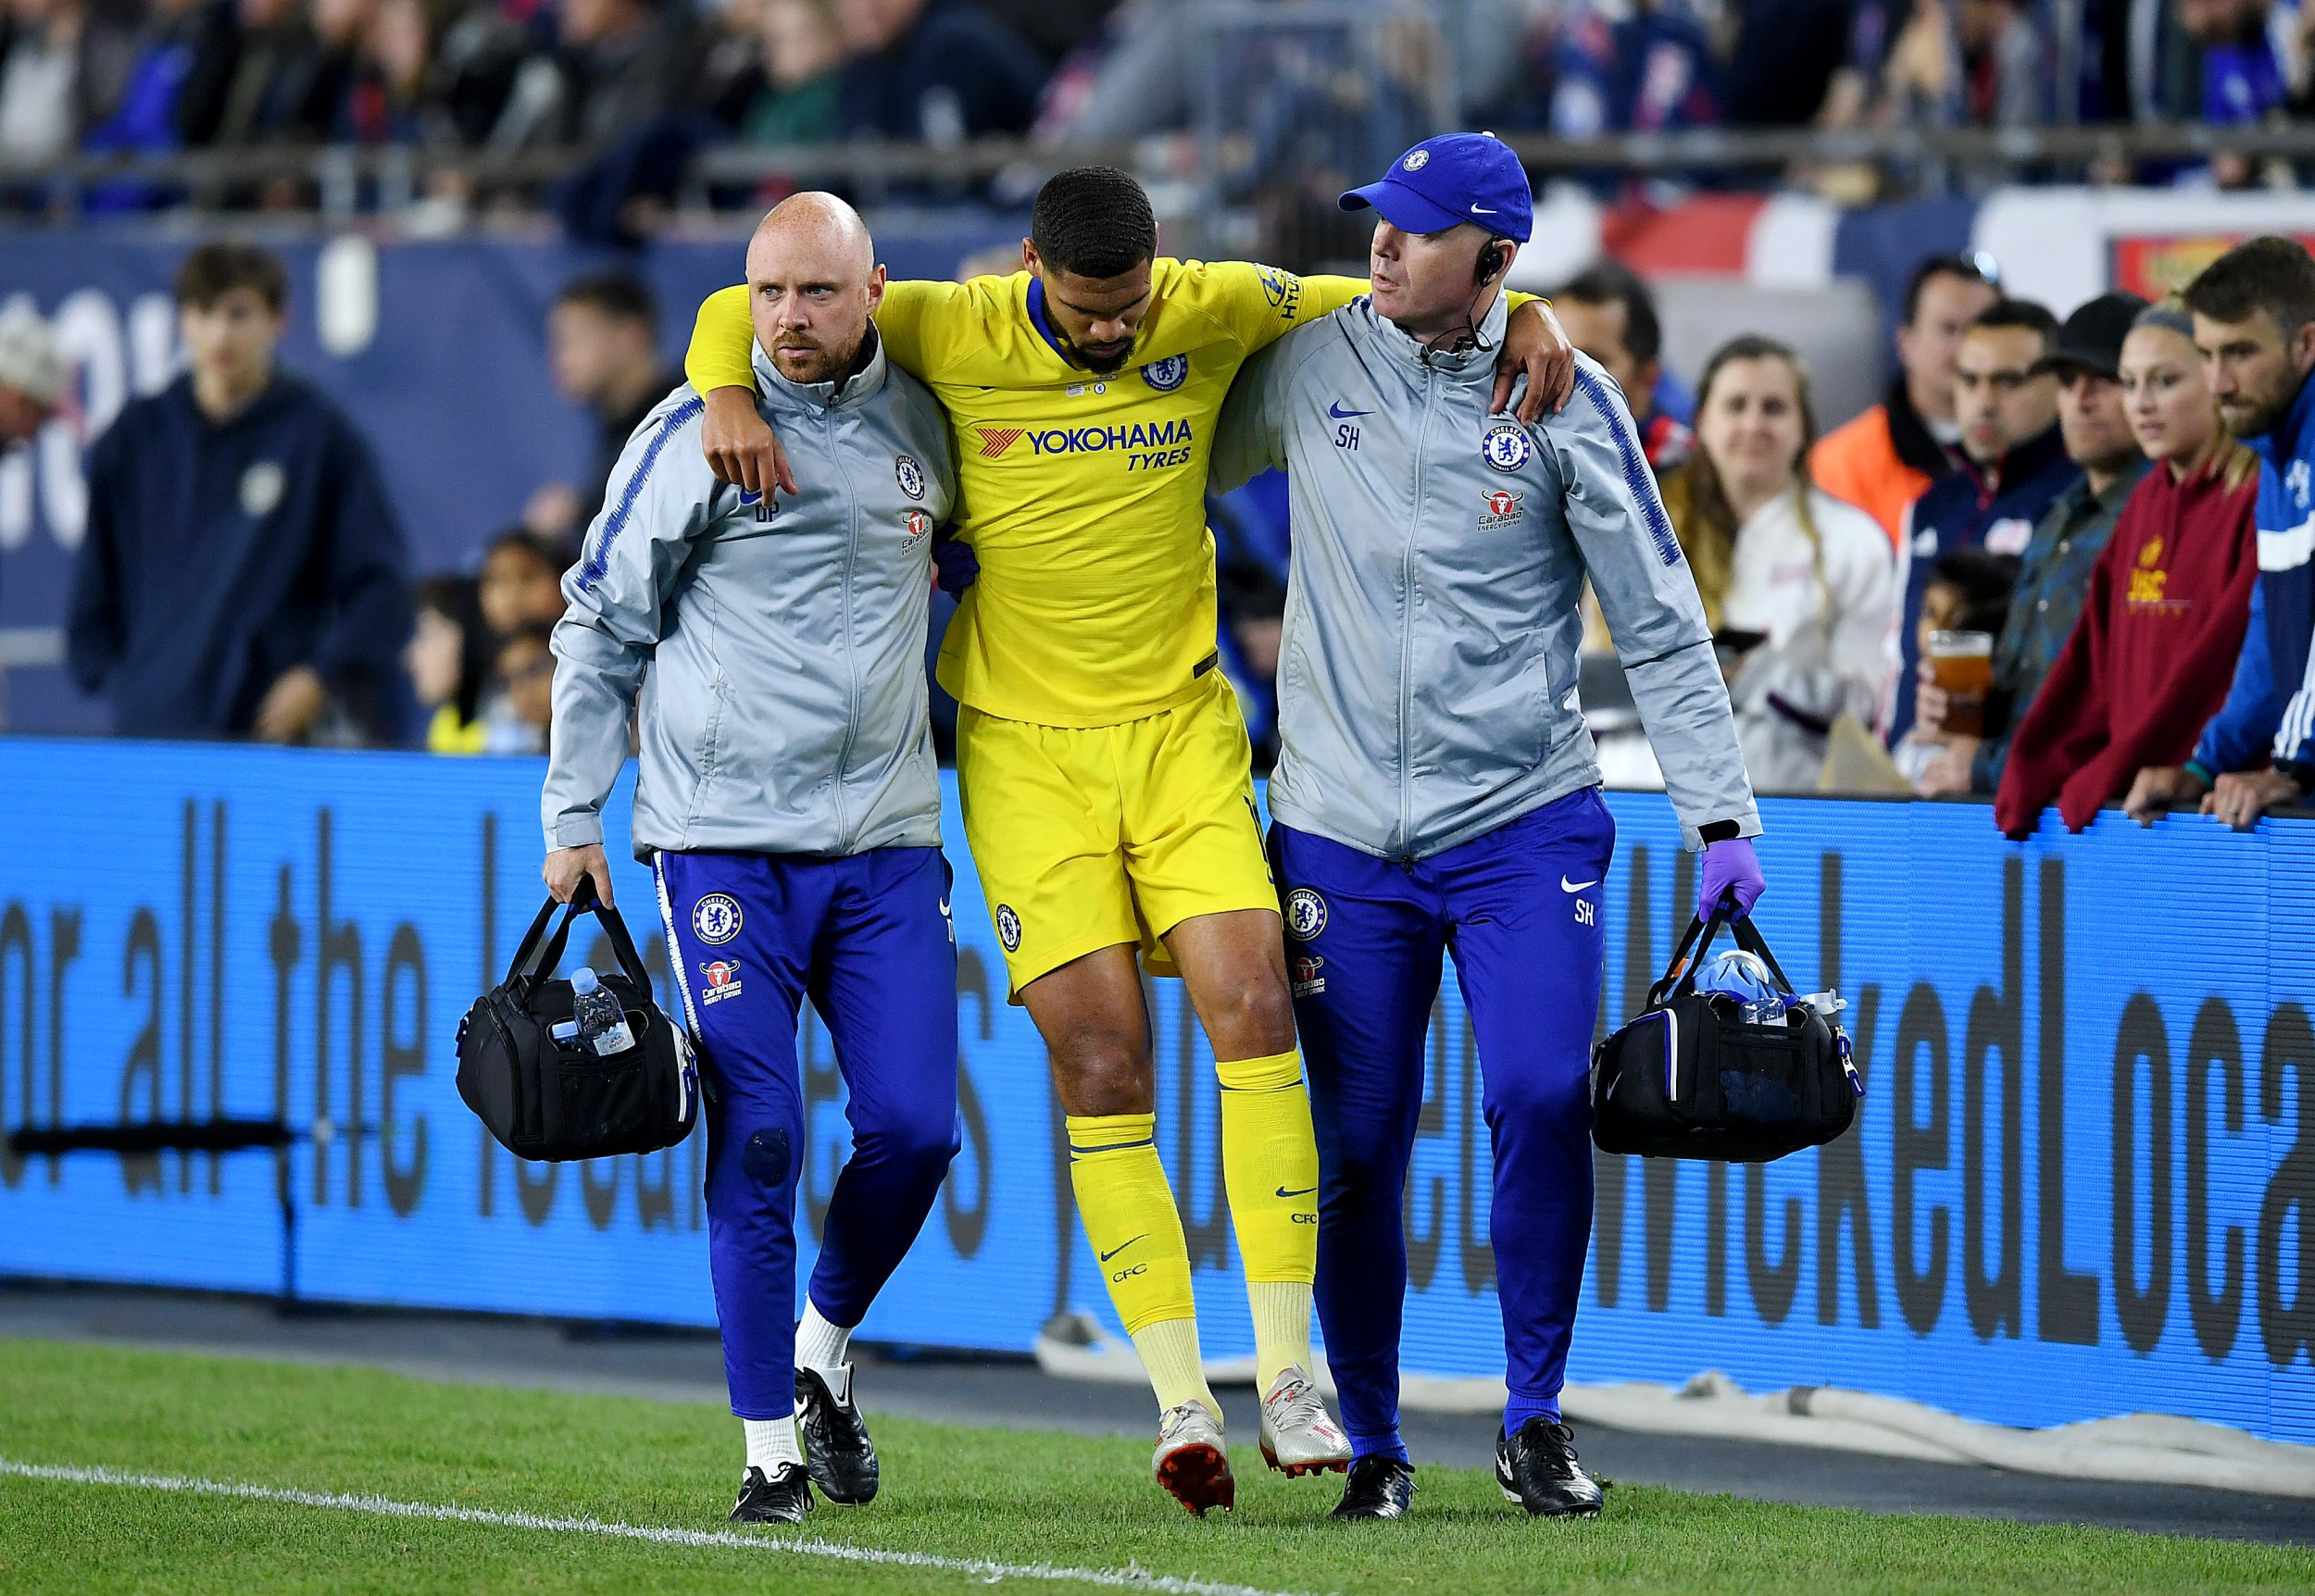 Chelsea confirm Ruben Loftus-Cheek will miss the Europa League final after rupturing his Achilles